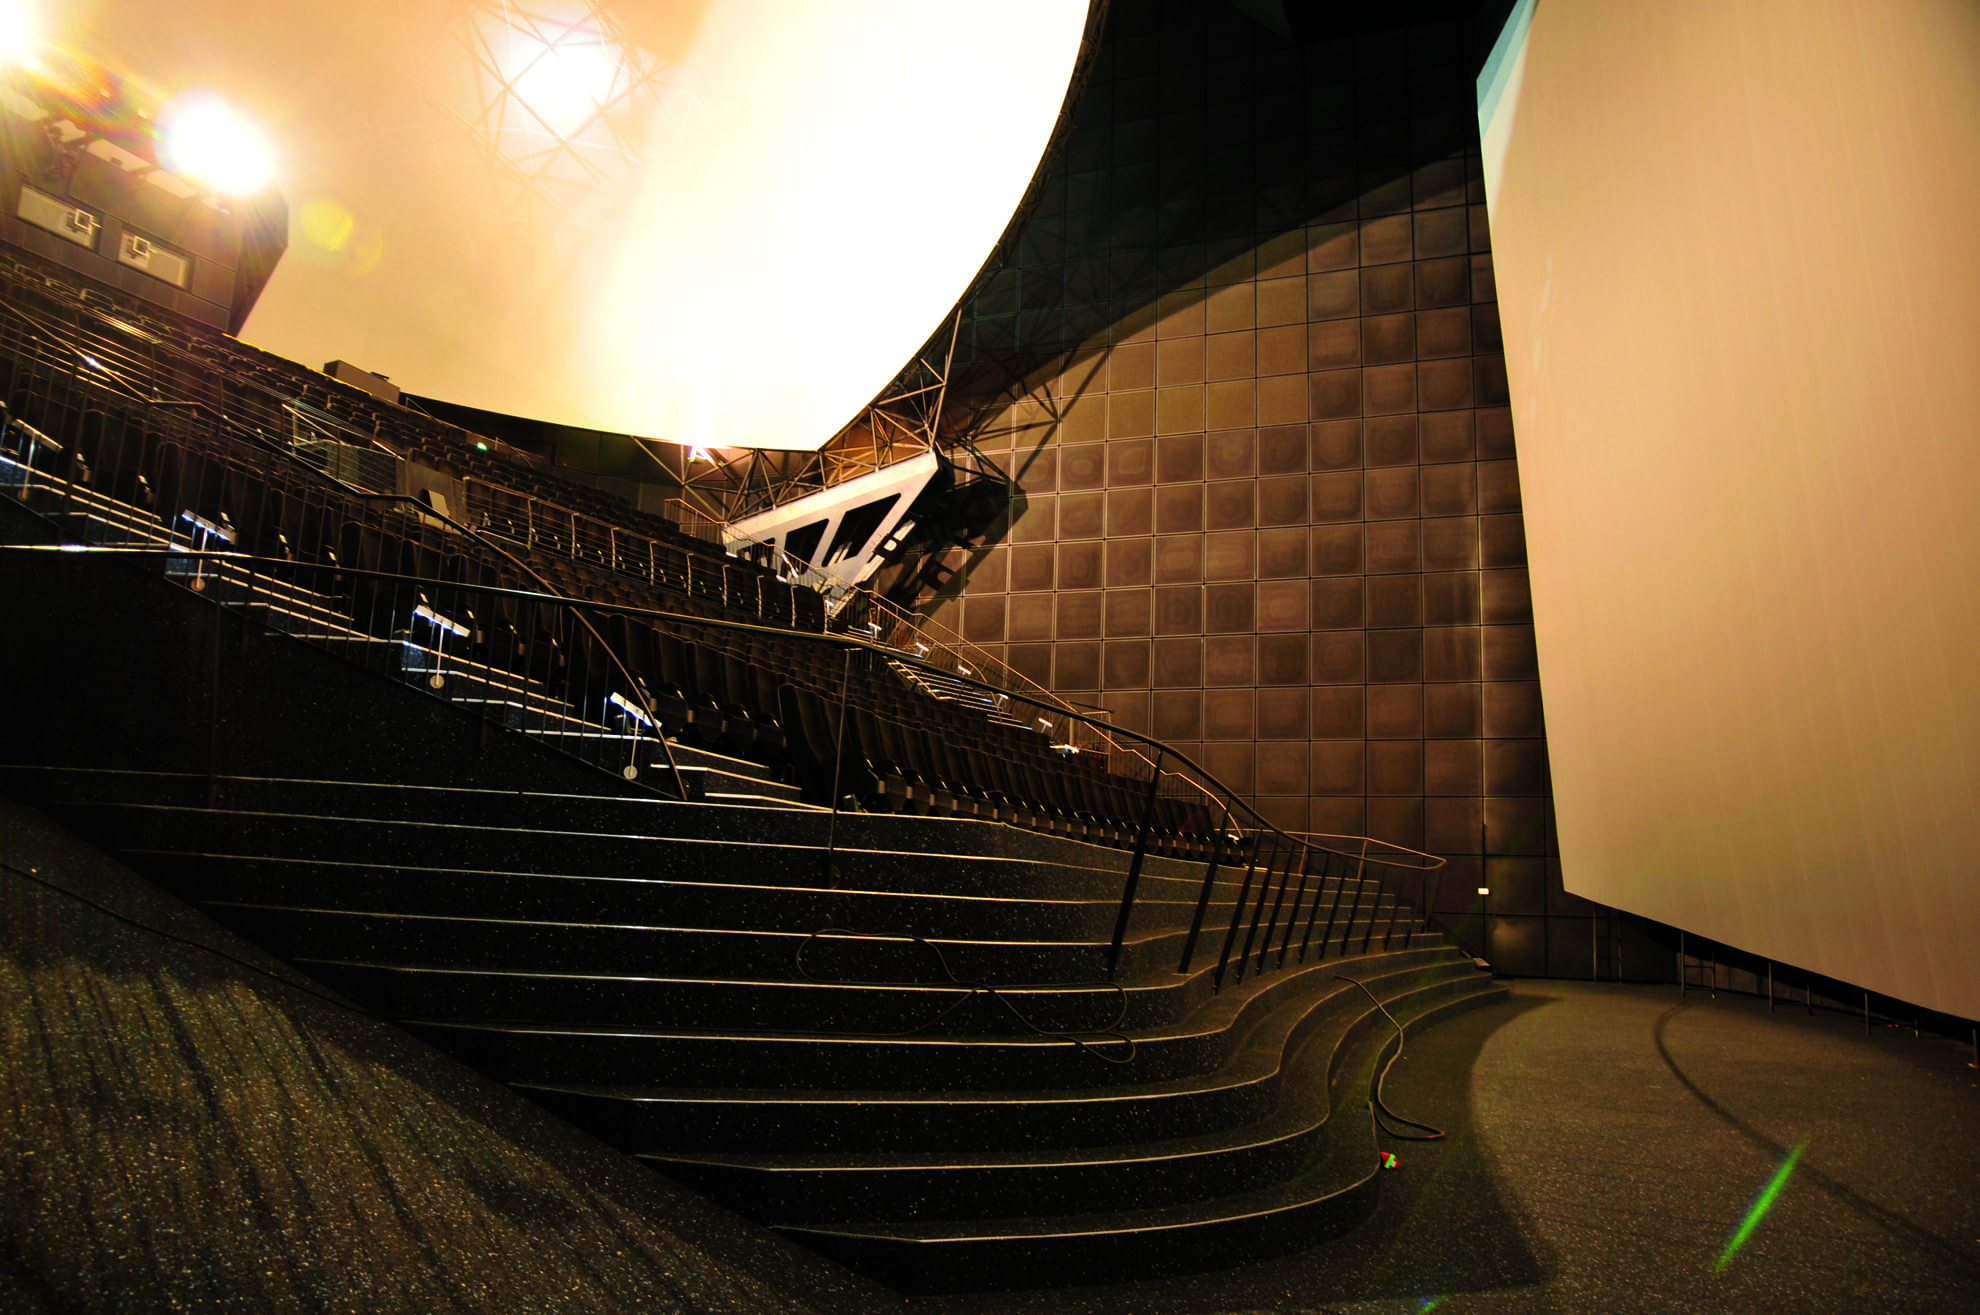 Cinemagnum Auditorium at the Cinecittà in Nuremberg, Germany